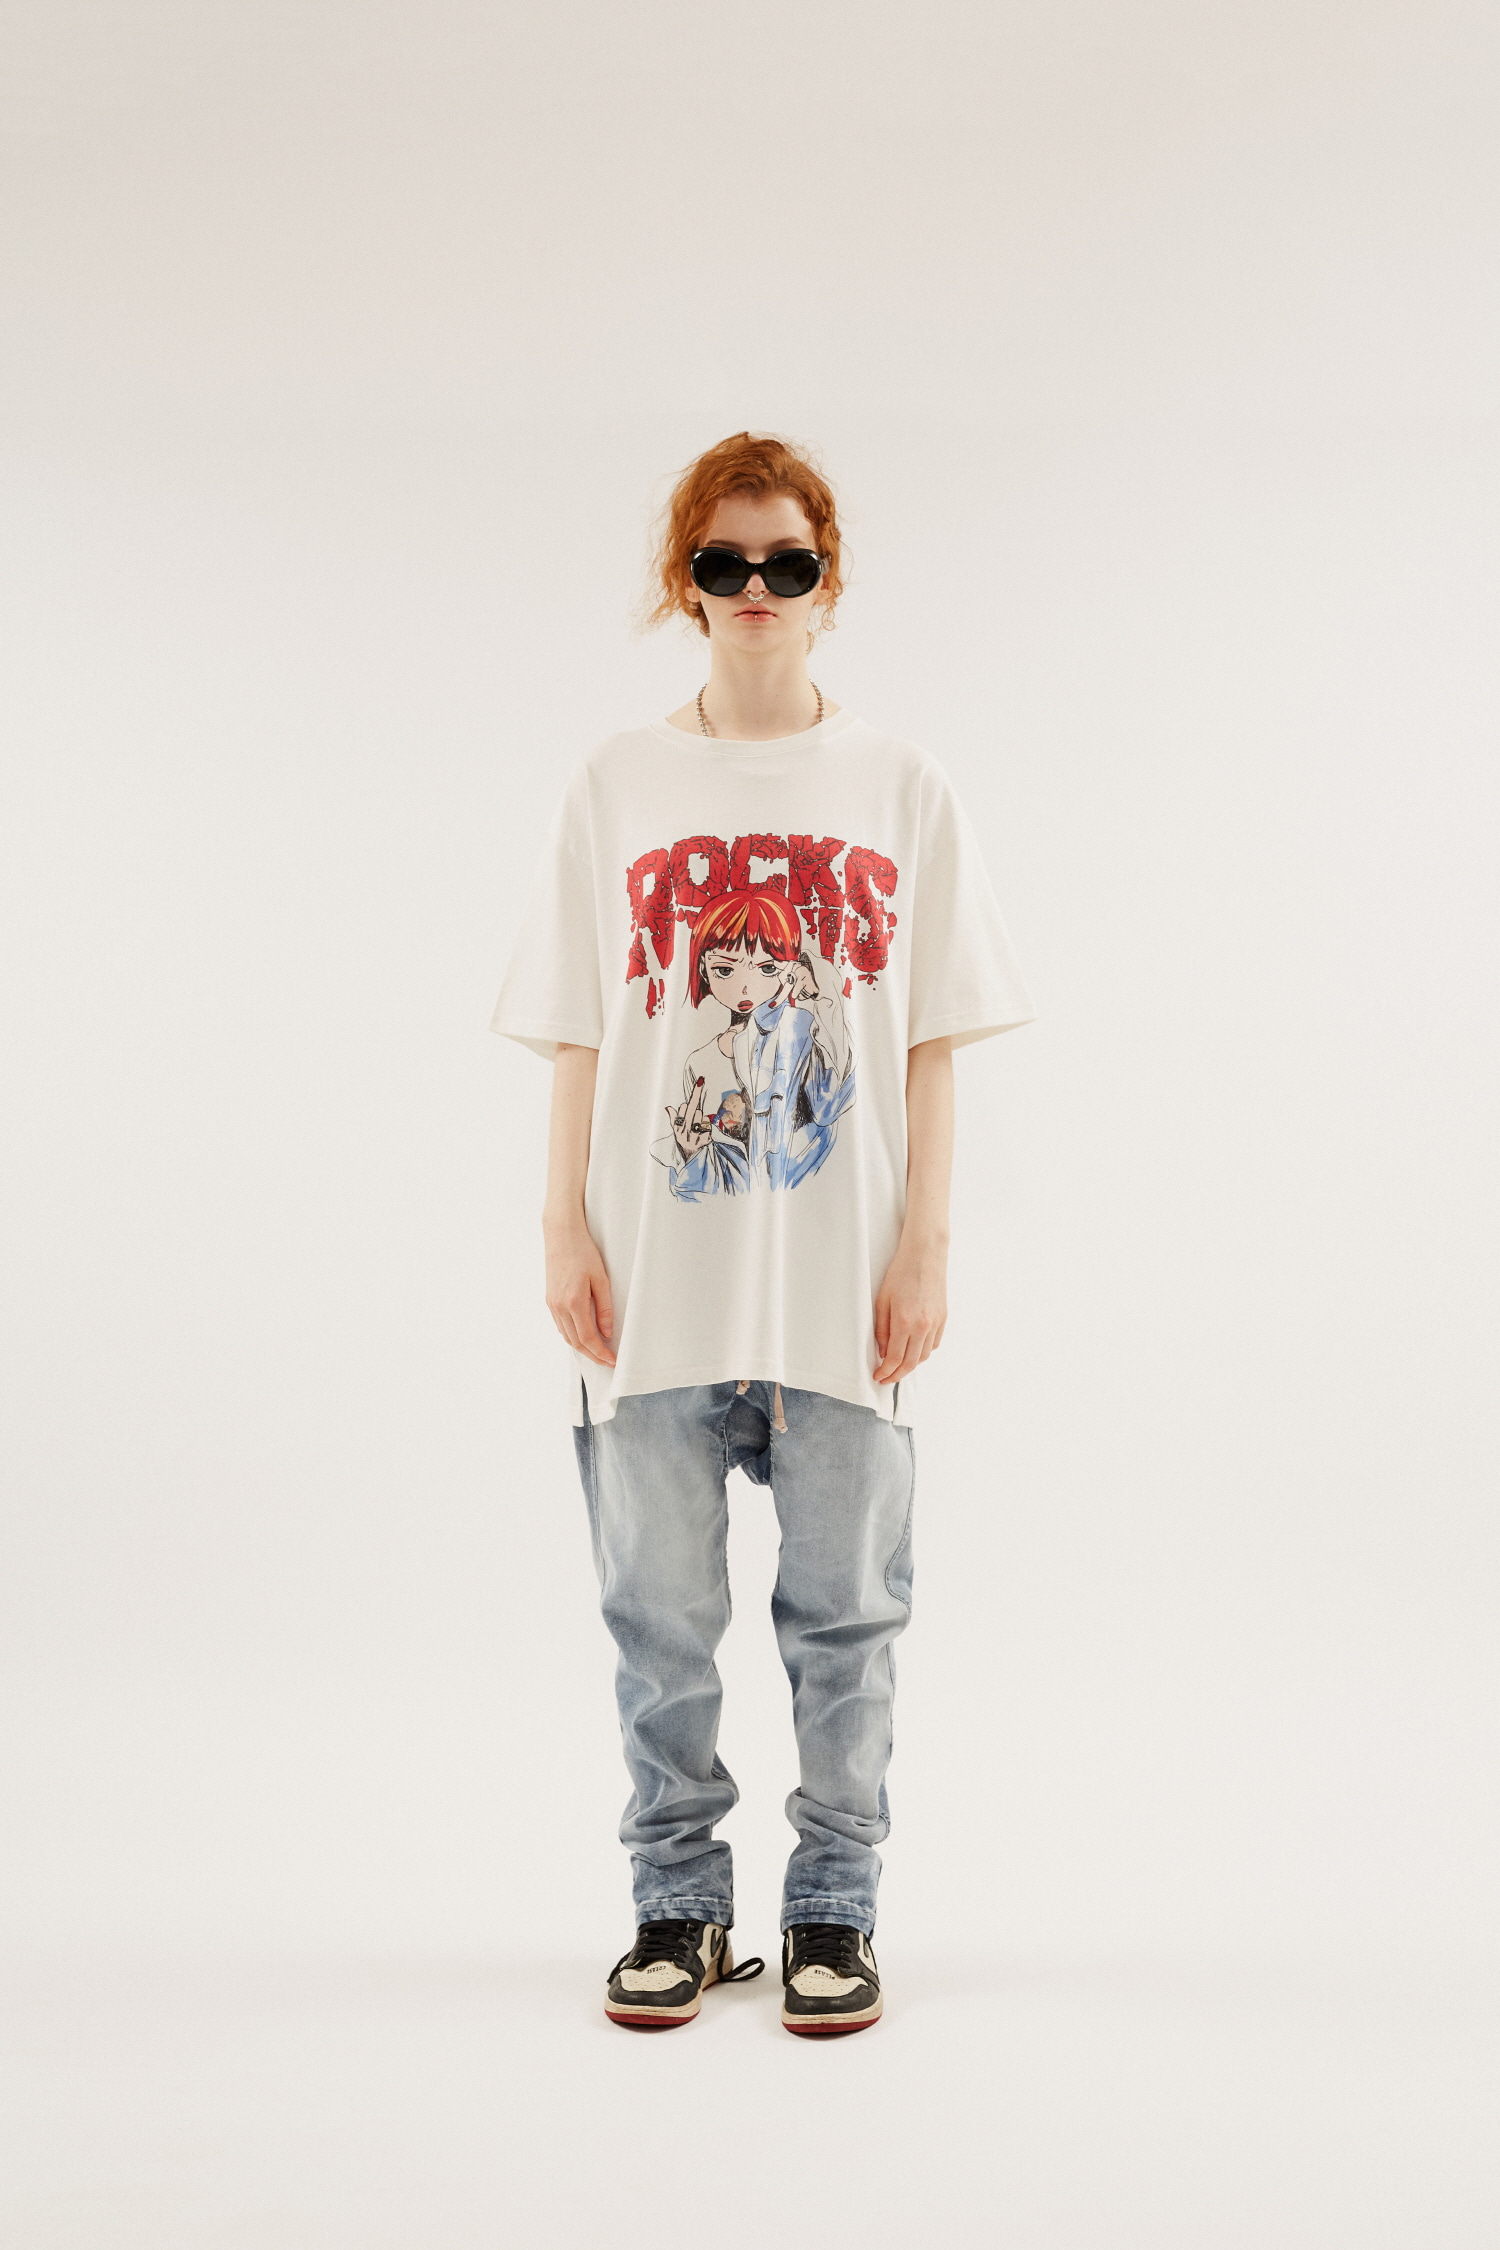 Collection_2020 S/S 1st_10